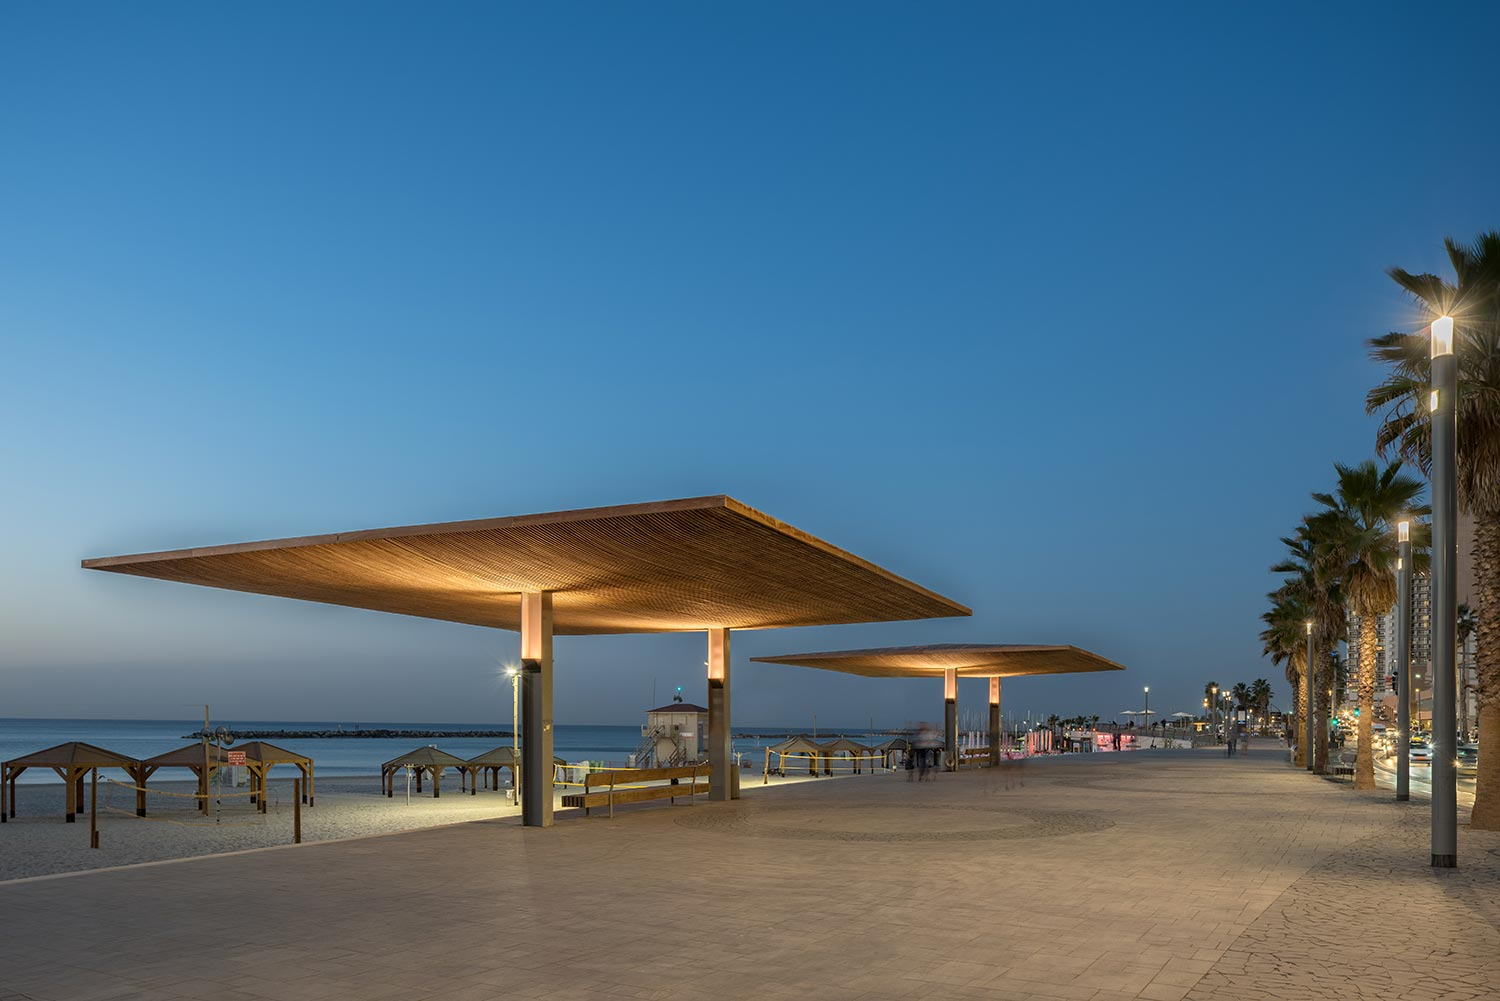 TLV Boardwalk